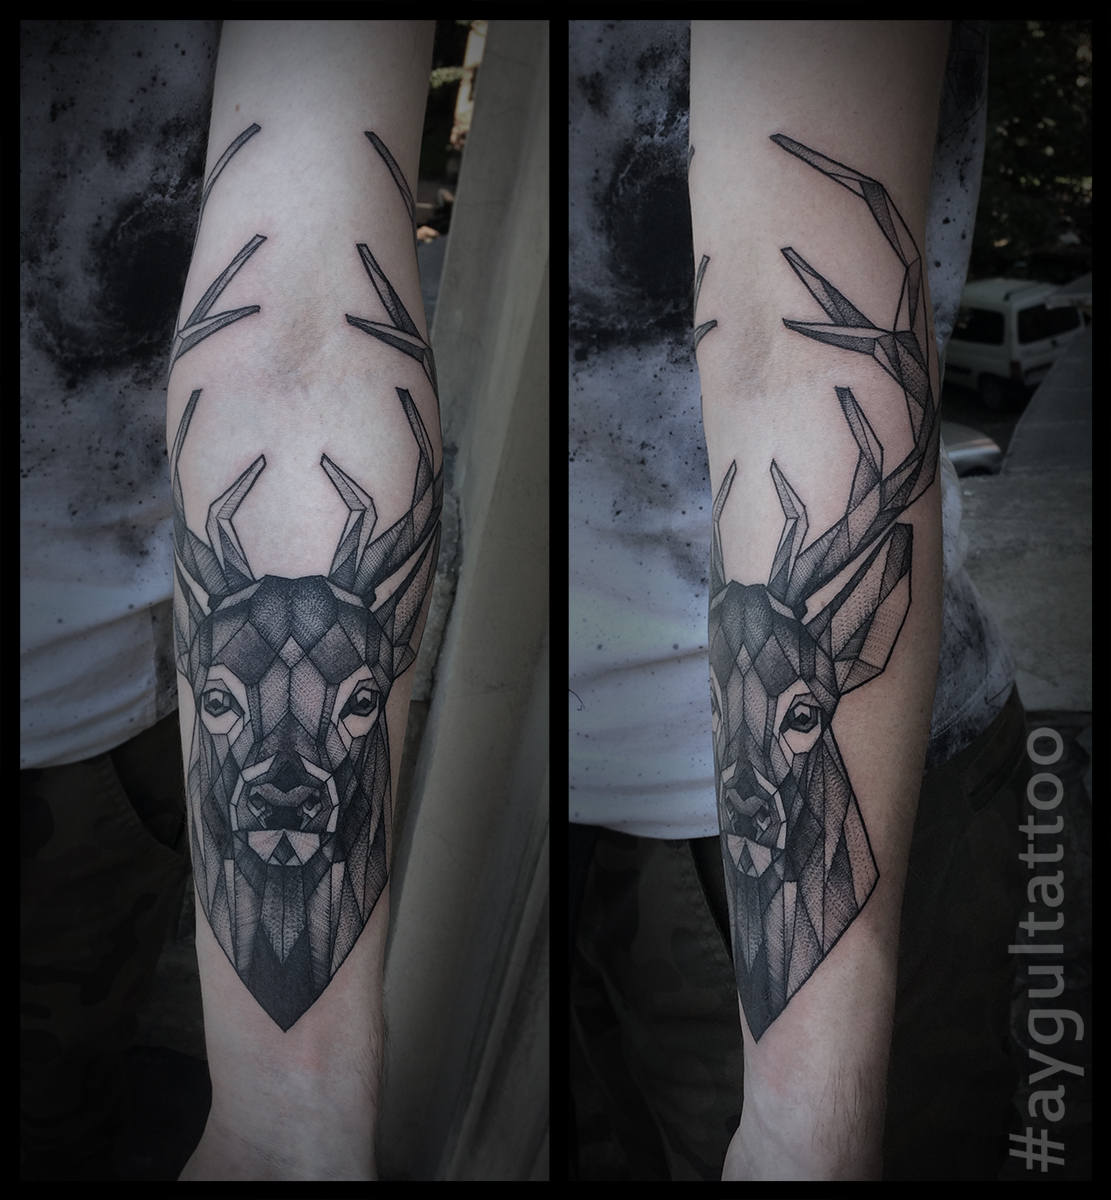 #deer #sketchy #geomentry #aygultattoo